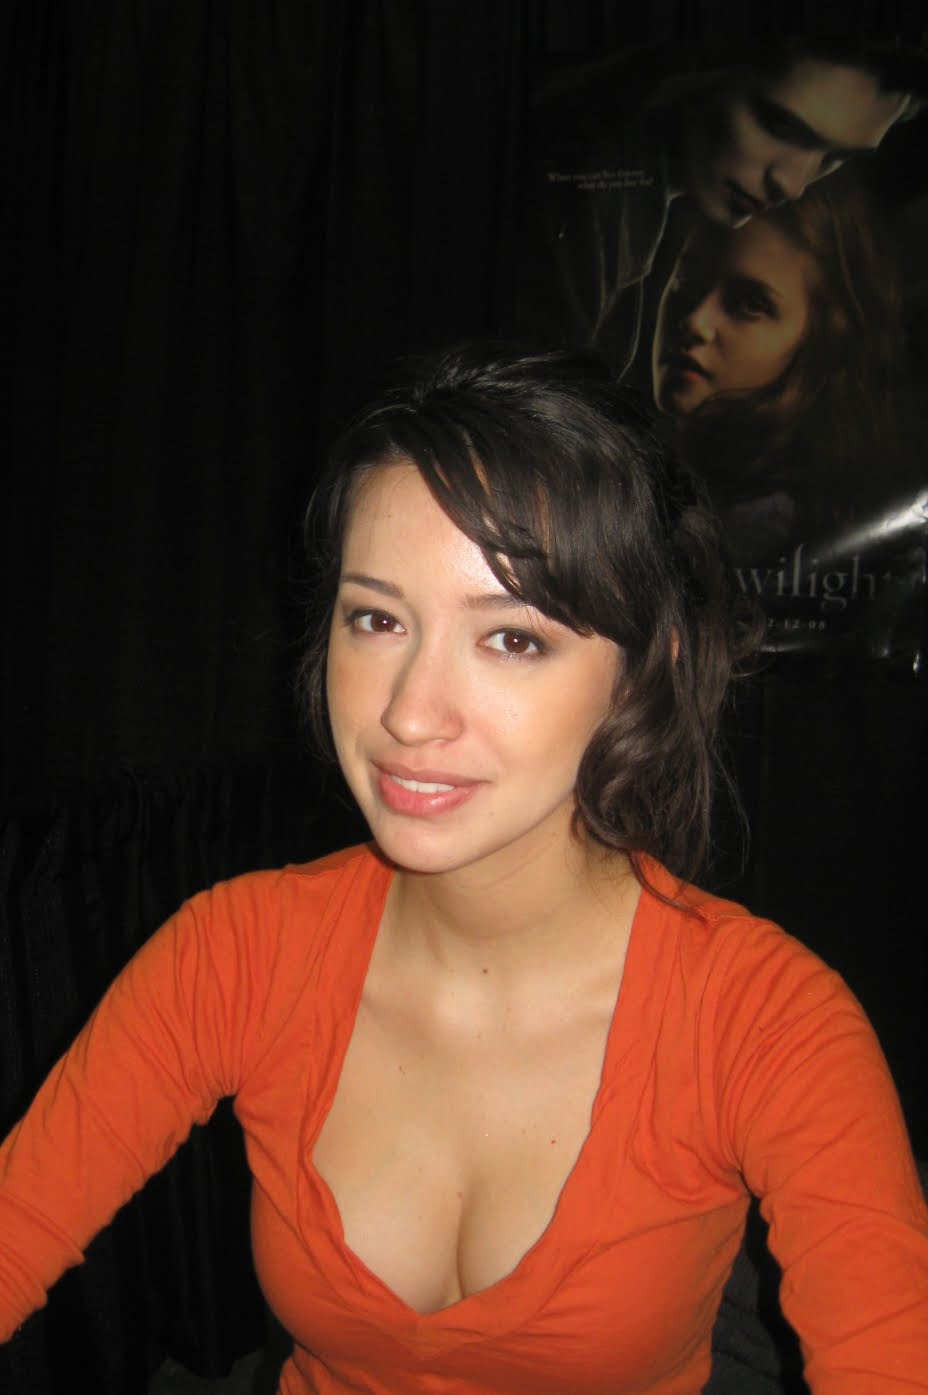 Christian Serratos Twilight